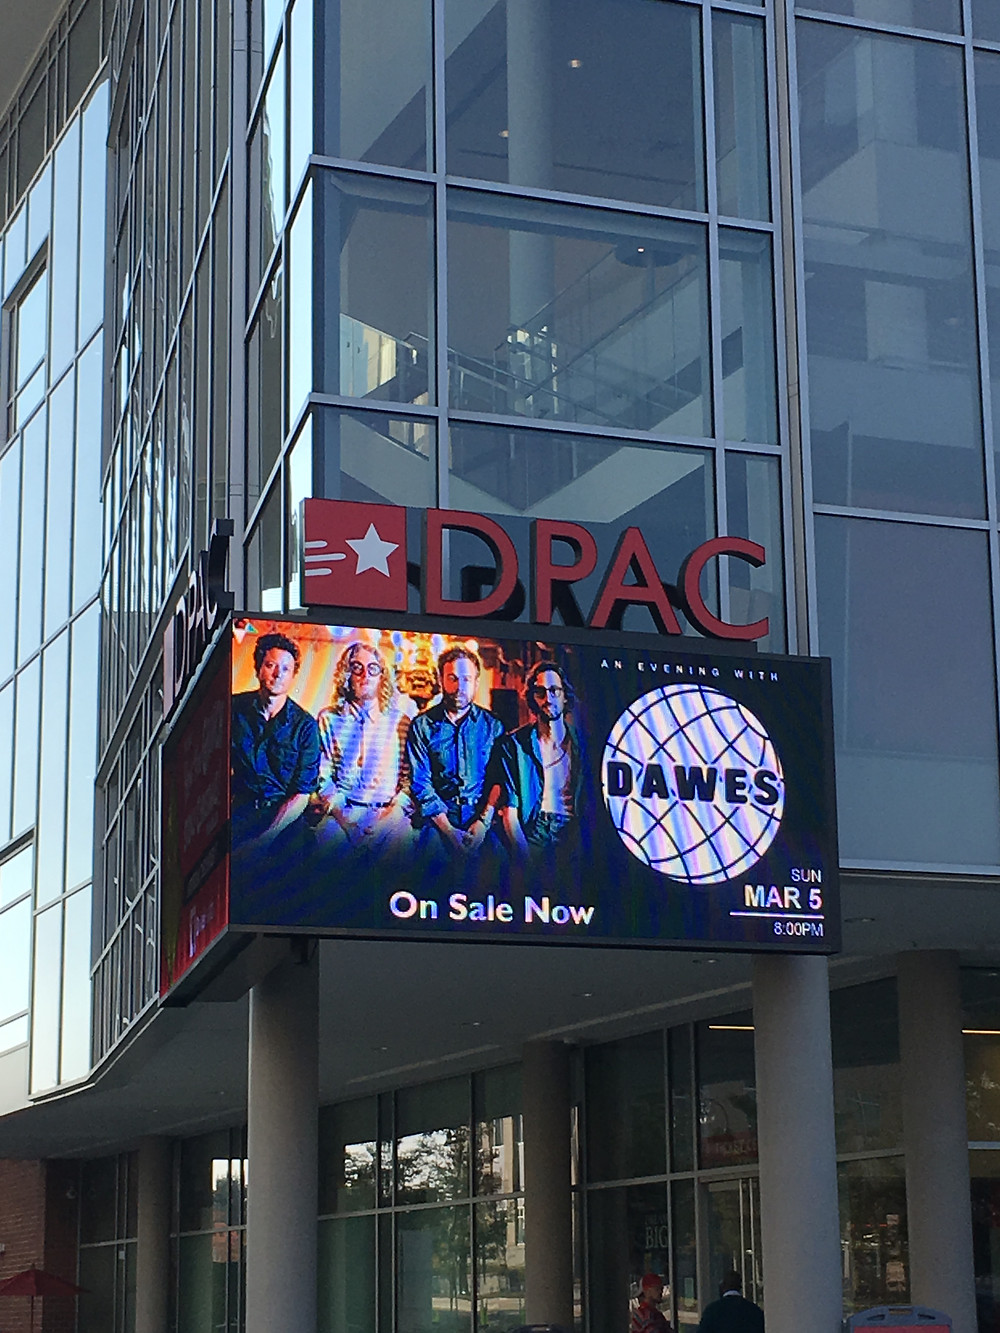 DPAC on a friday afternoon. Make sure to check it out as some big shows are playing at DPAC!